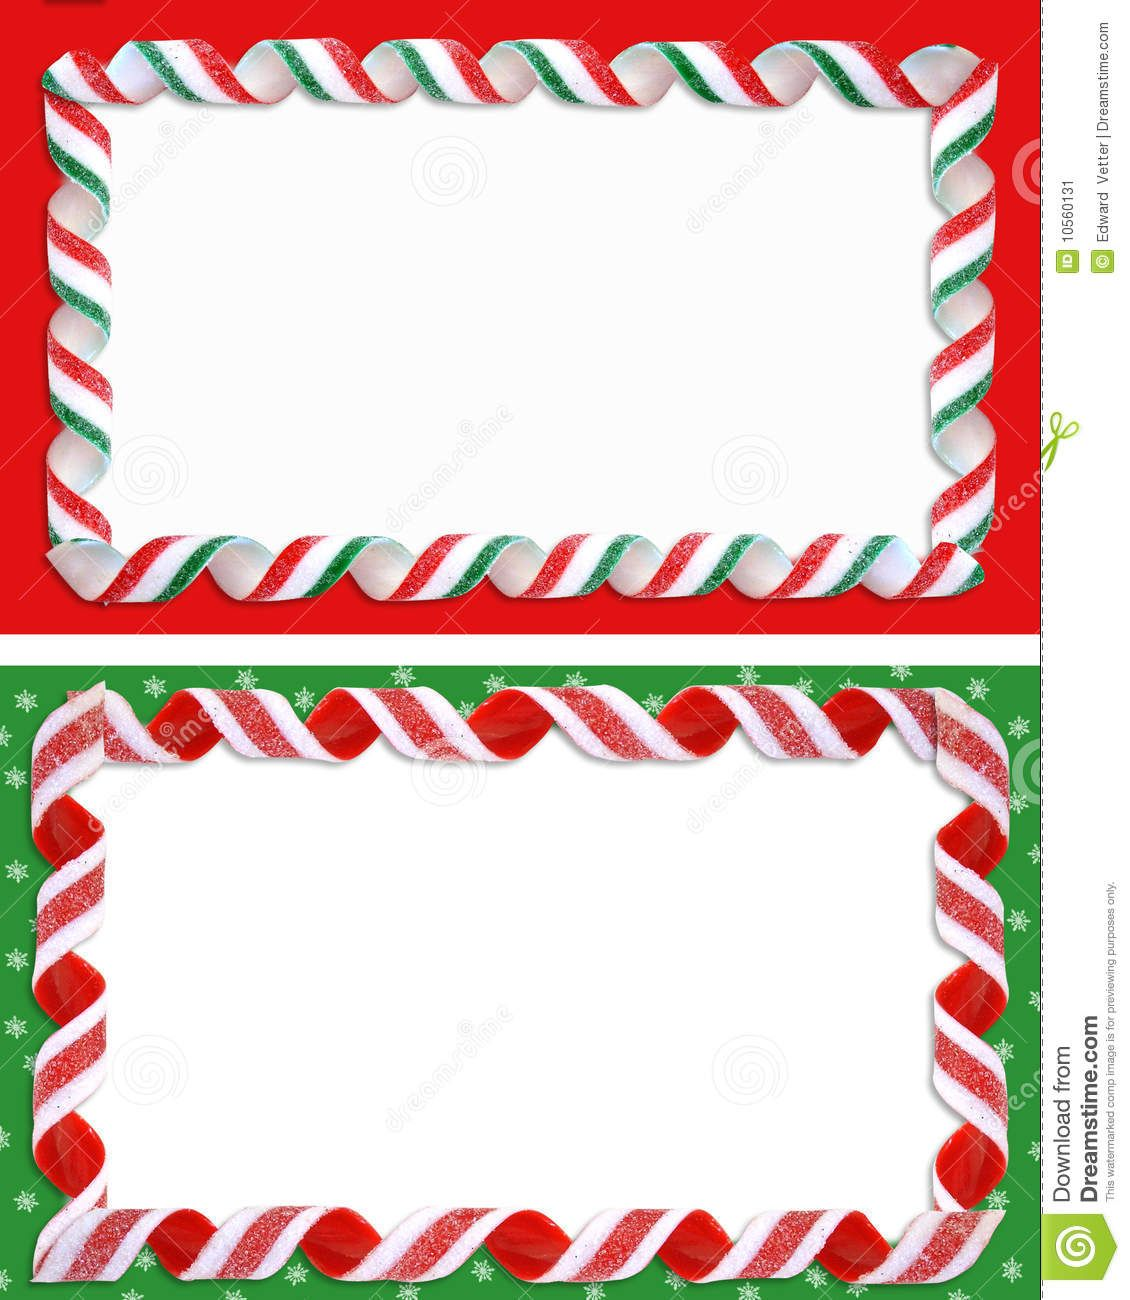 Christmas Labels Borders Blank Stock Image  Image